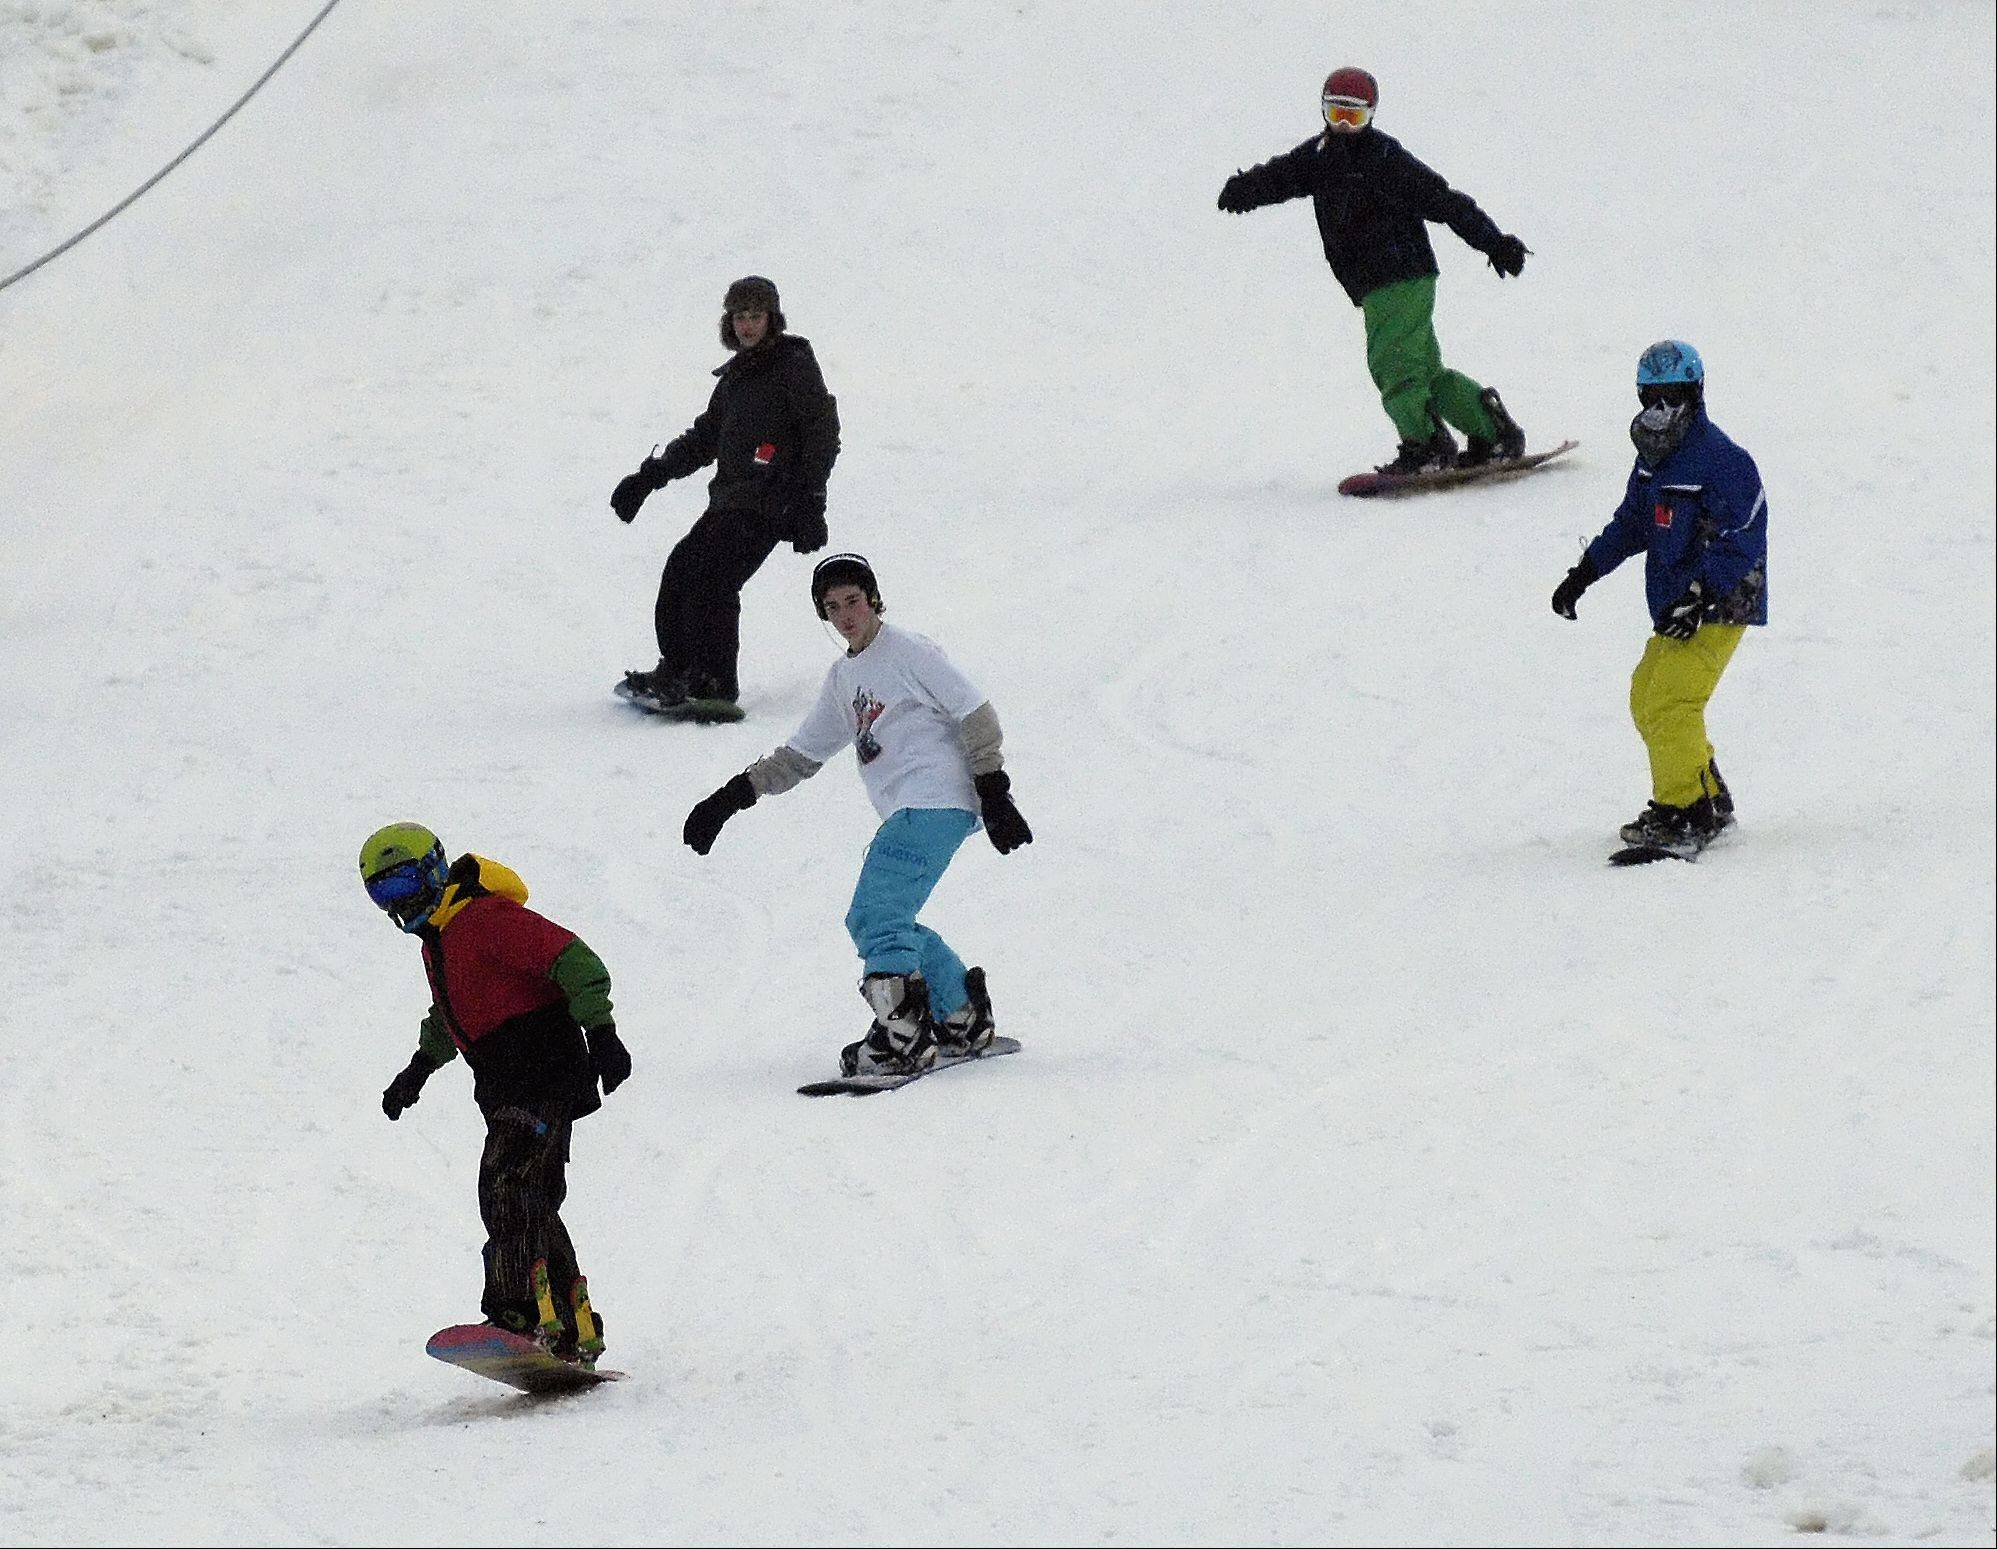 A group of snowboarders hit the slopes at Four Lake Ski Area in Lisle Thursday.